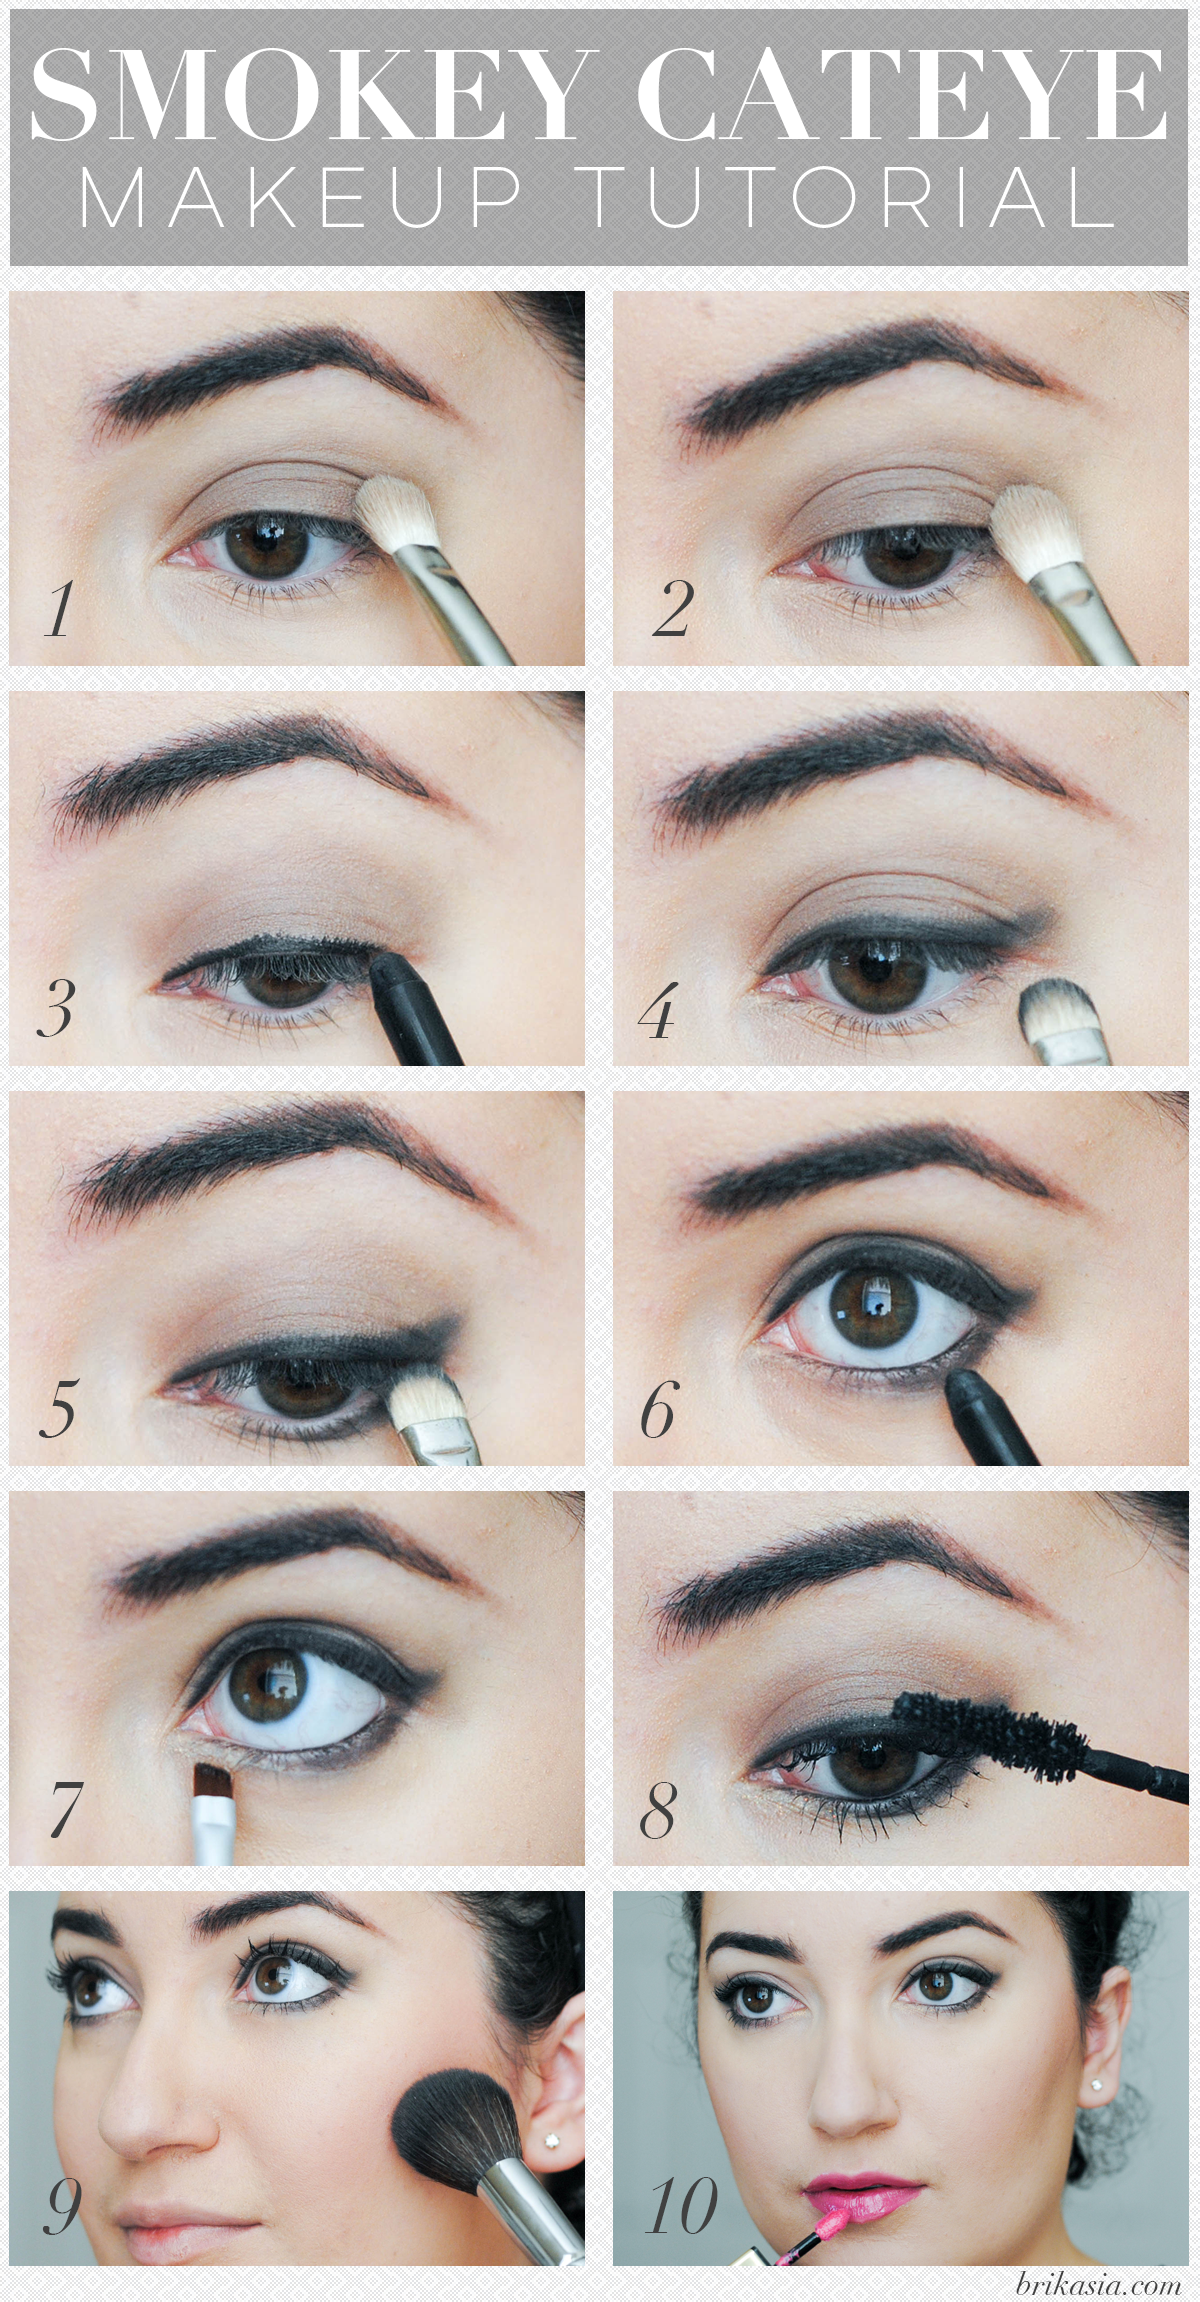 Smokey cateye makeup tutorial makeup tutorials and hair makeup smokey cateye makeup tutorial baditri Gallery